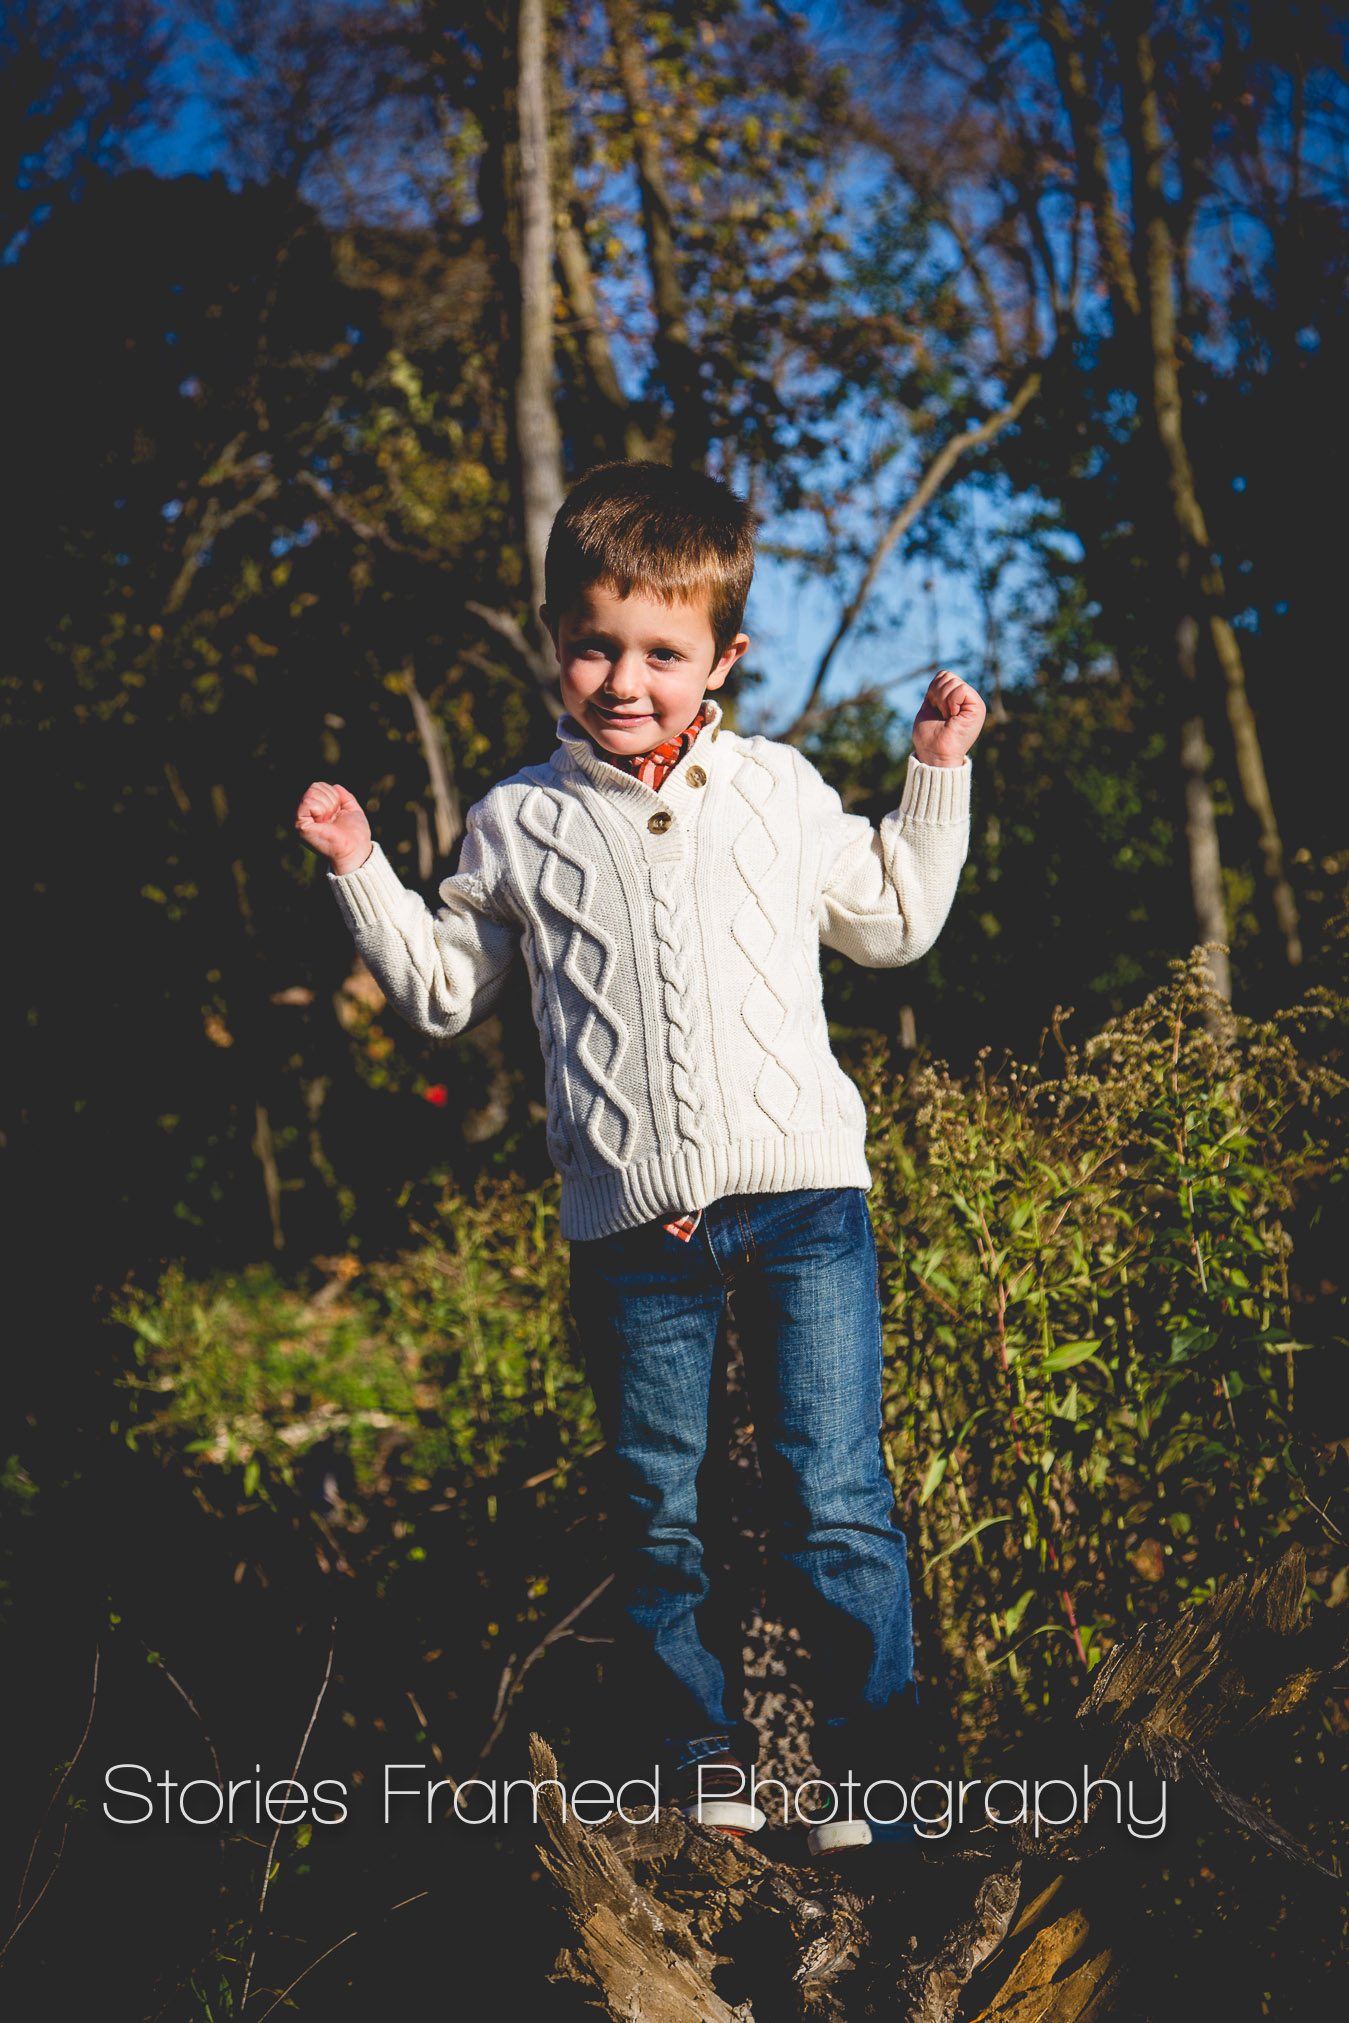 Stories Framed Photography | boy in the woods | John